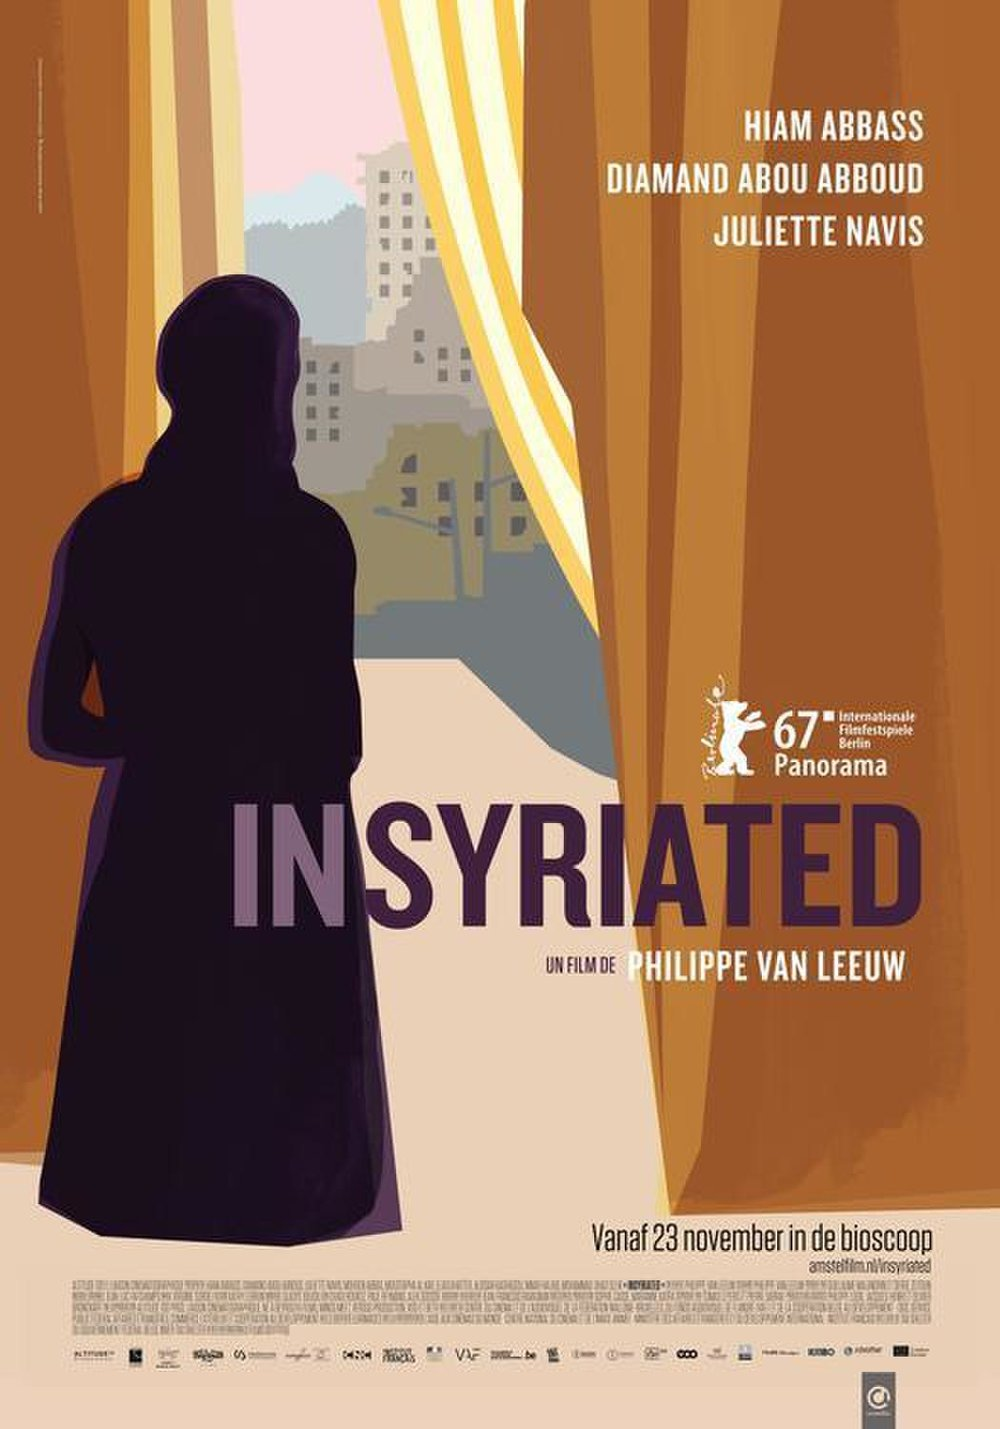 Insyriated - A tense, claustrophobic film. The action is focused on a family trapped inside their home in a city under siege. Horrible, oppressive and brutal. When I watched this at the cinema, people silently stumbled out, too numb to speak. But this is just a film. How much more terrible must reality be?